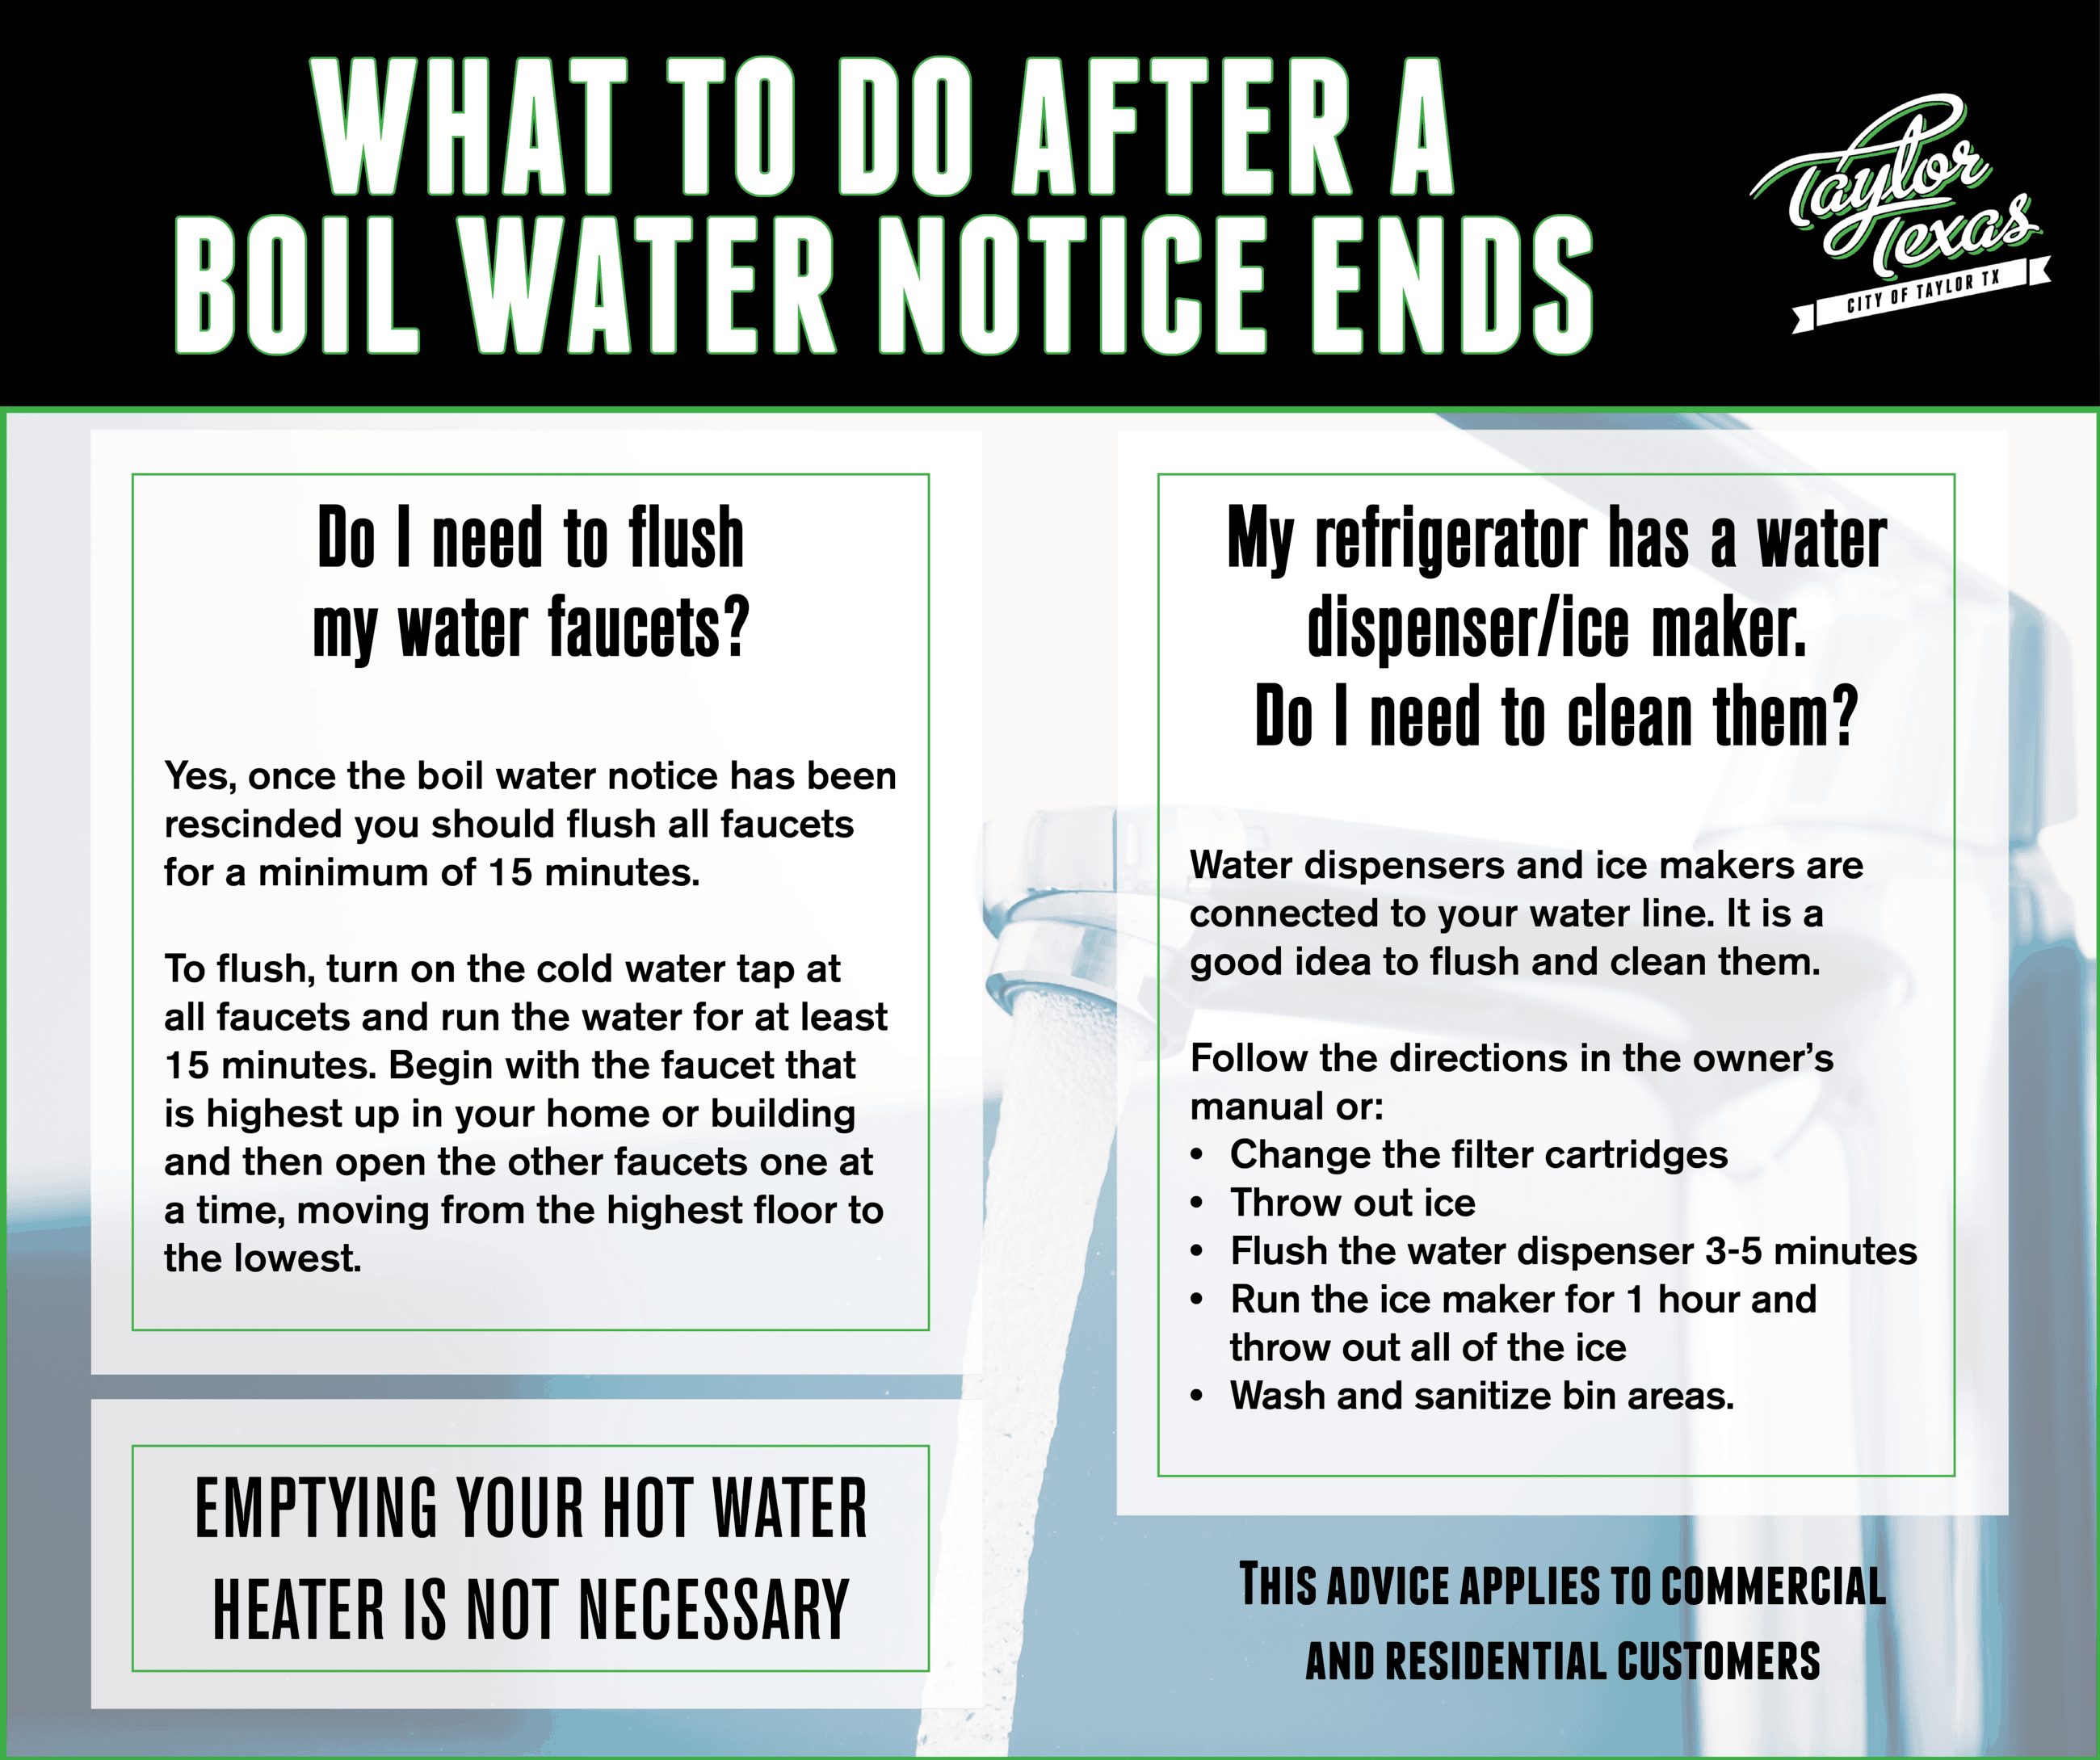 Tips for what to do after a boil water notice ends